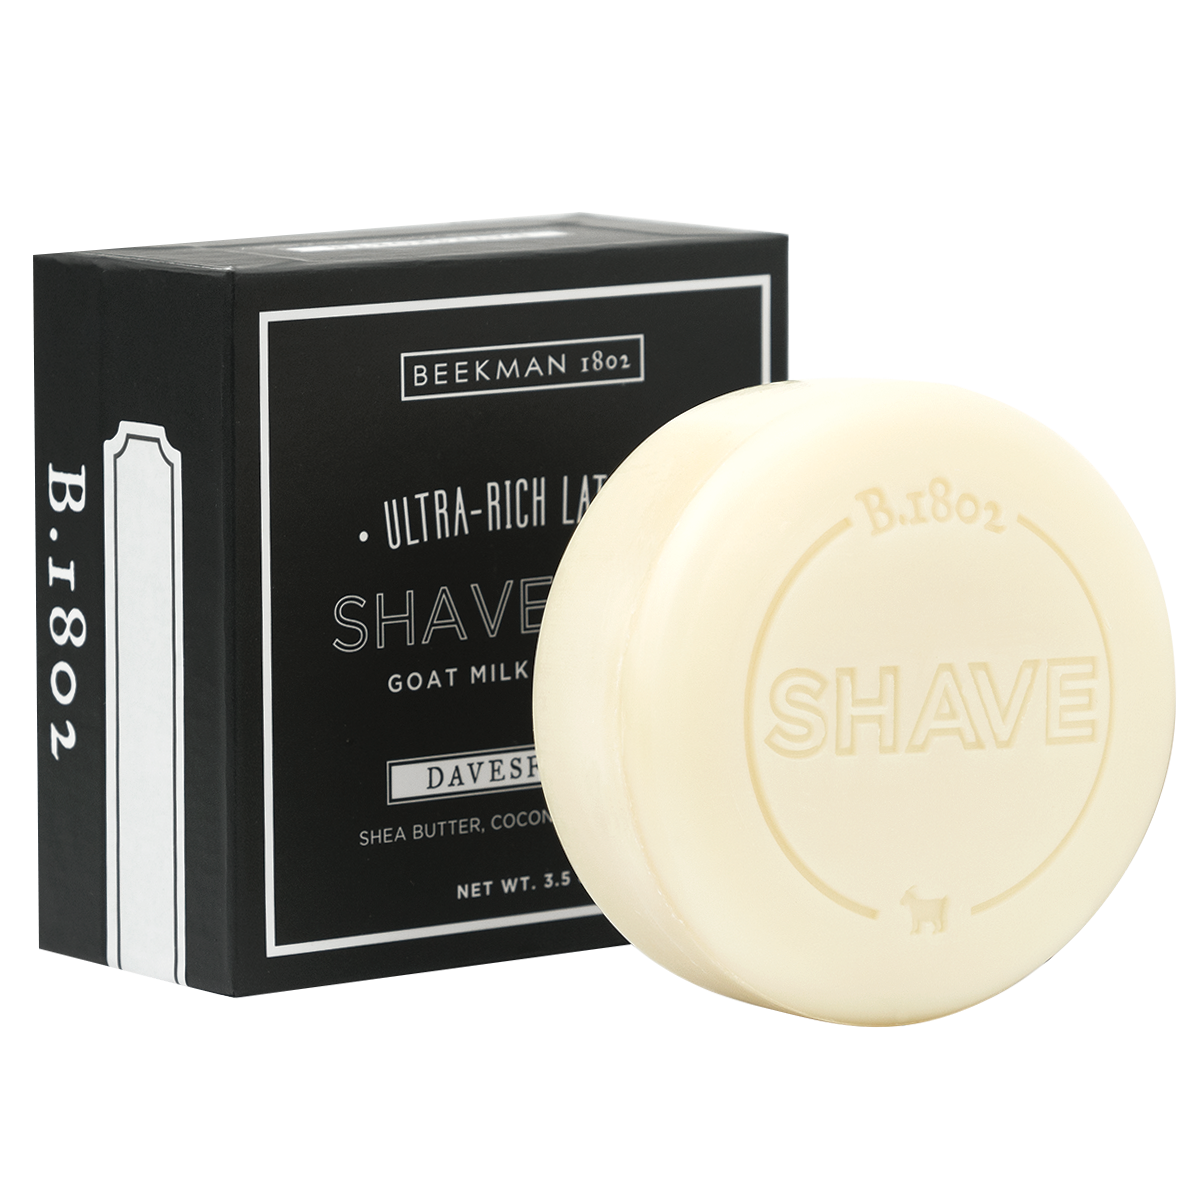 Beekman 1802 Davesforth Shave Bar